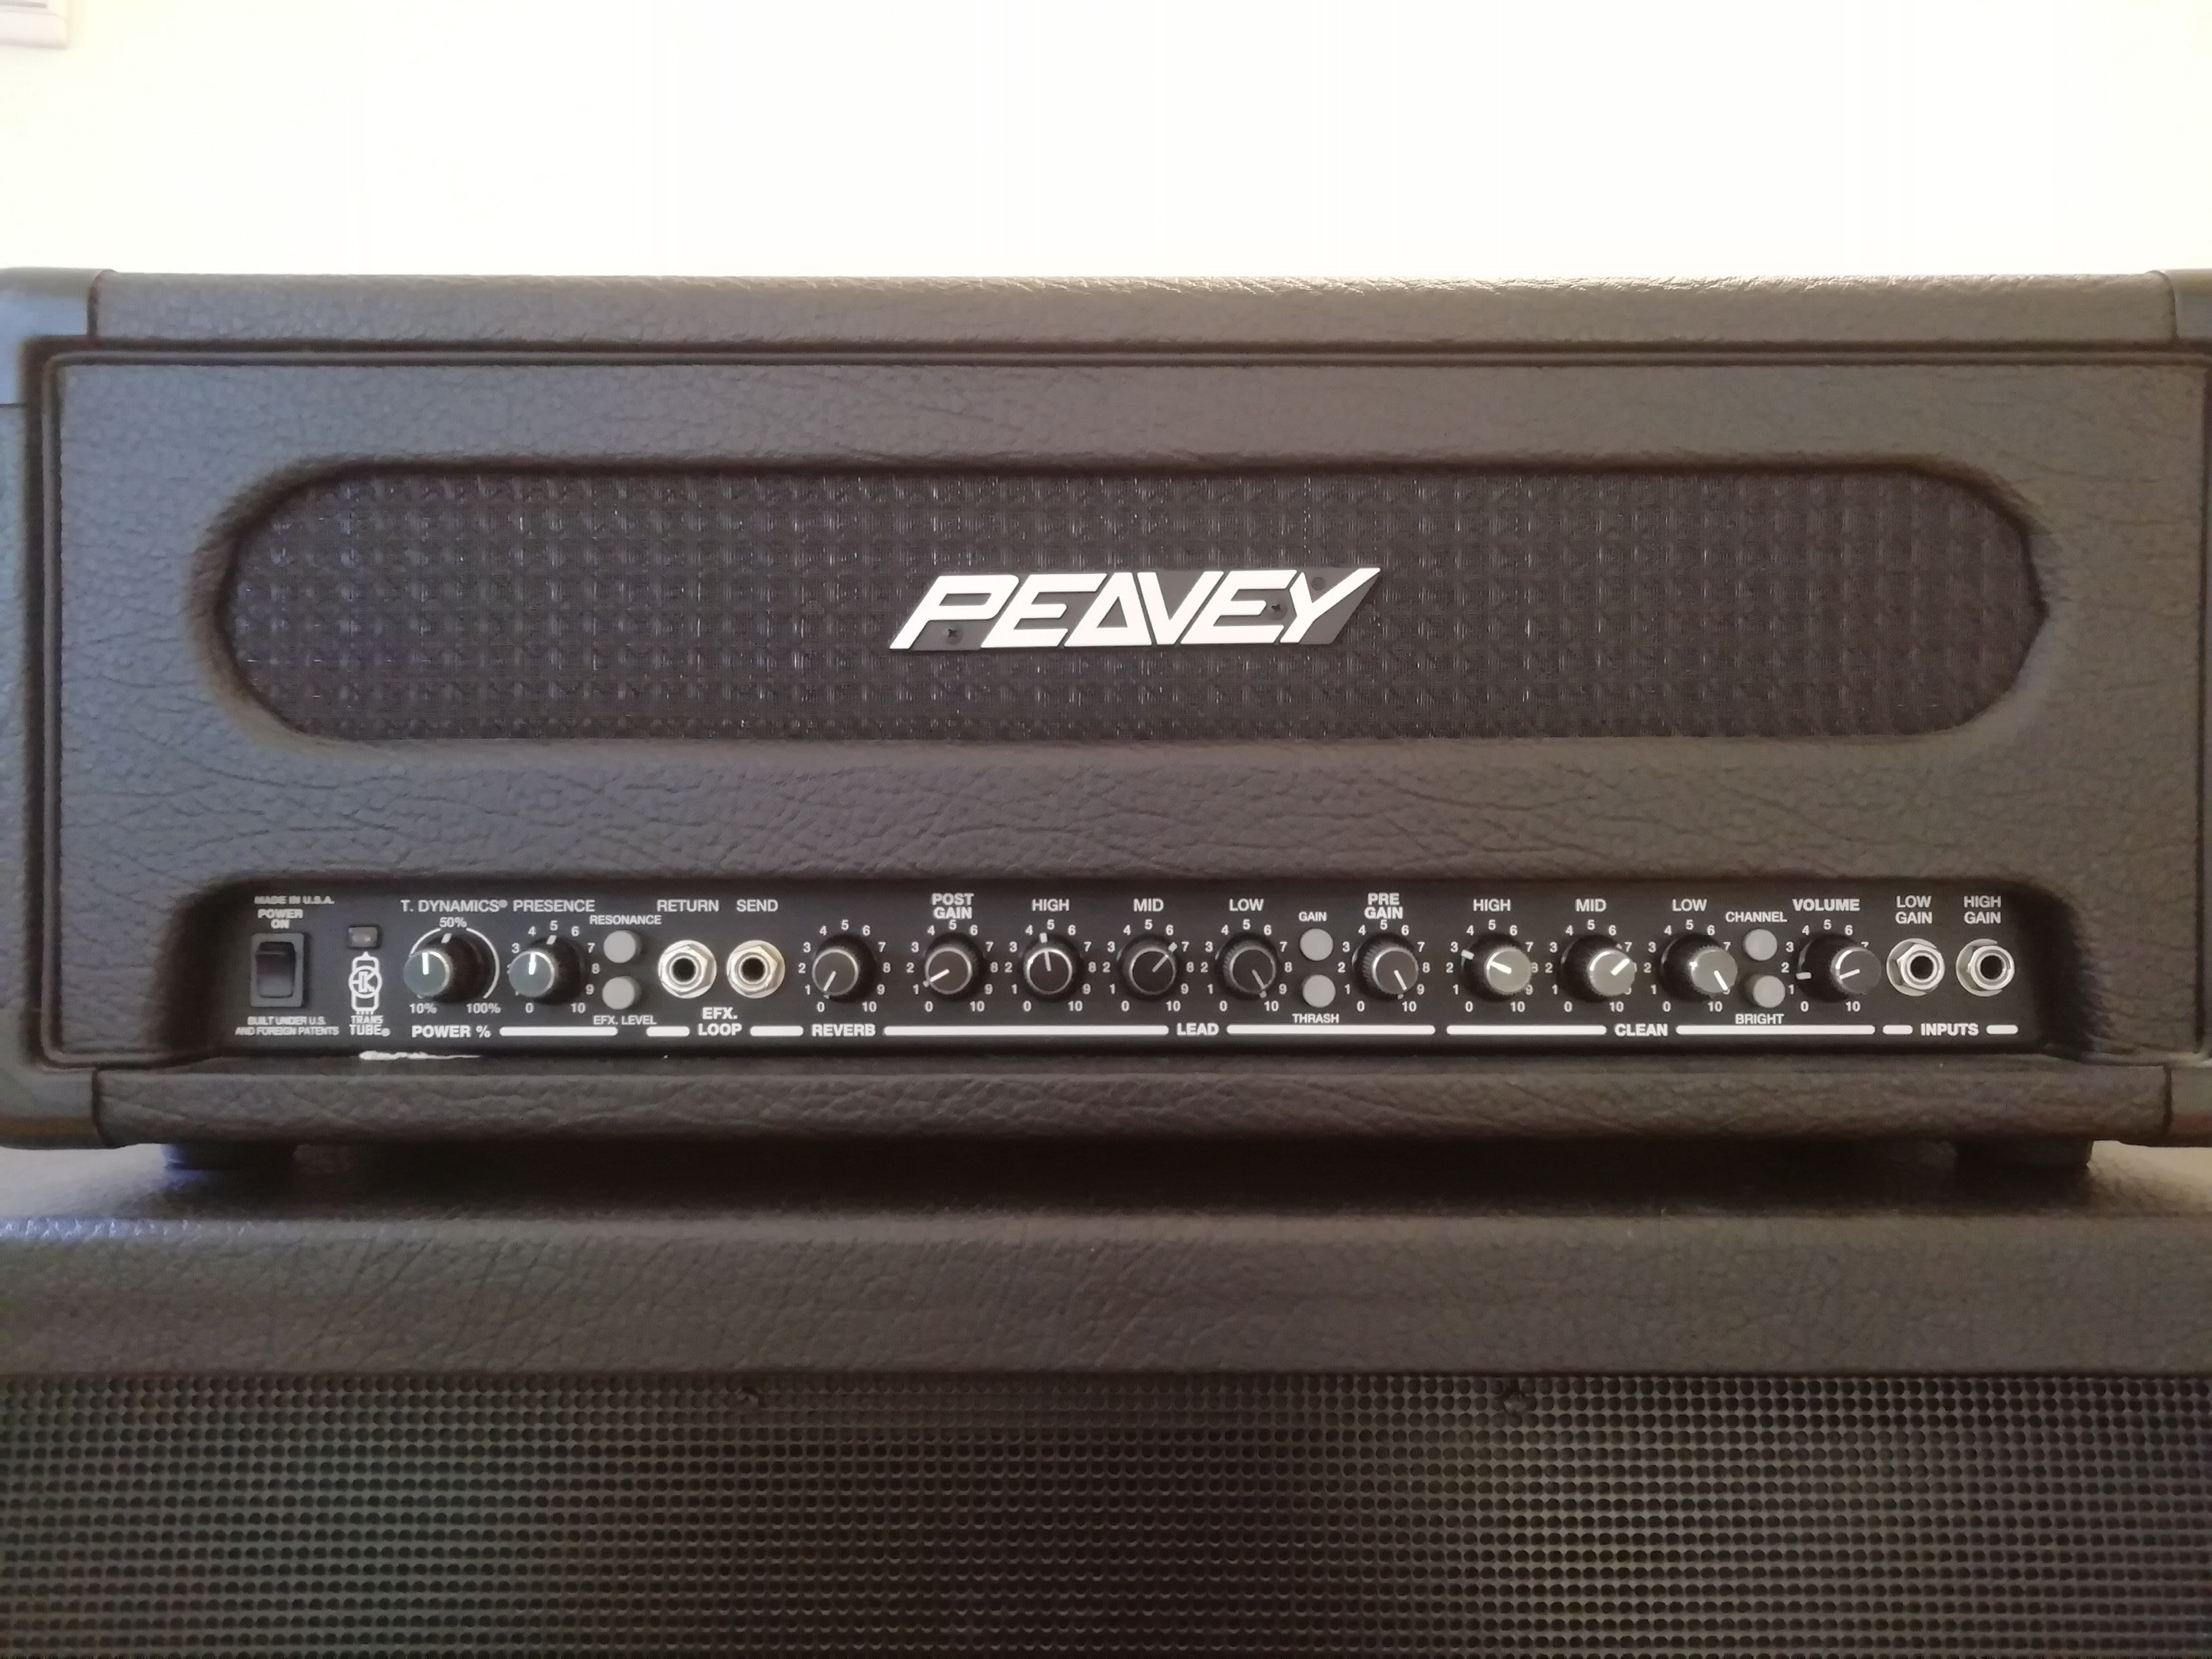 Peavey Supreme Xl 100 Watt Head - Just Me And Supreme